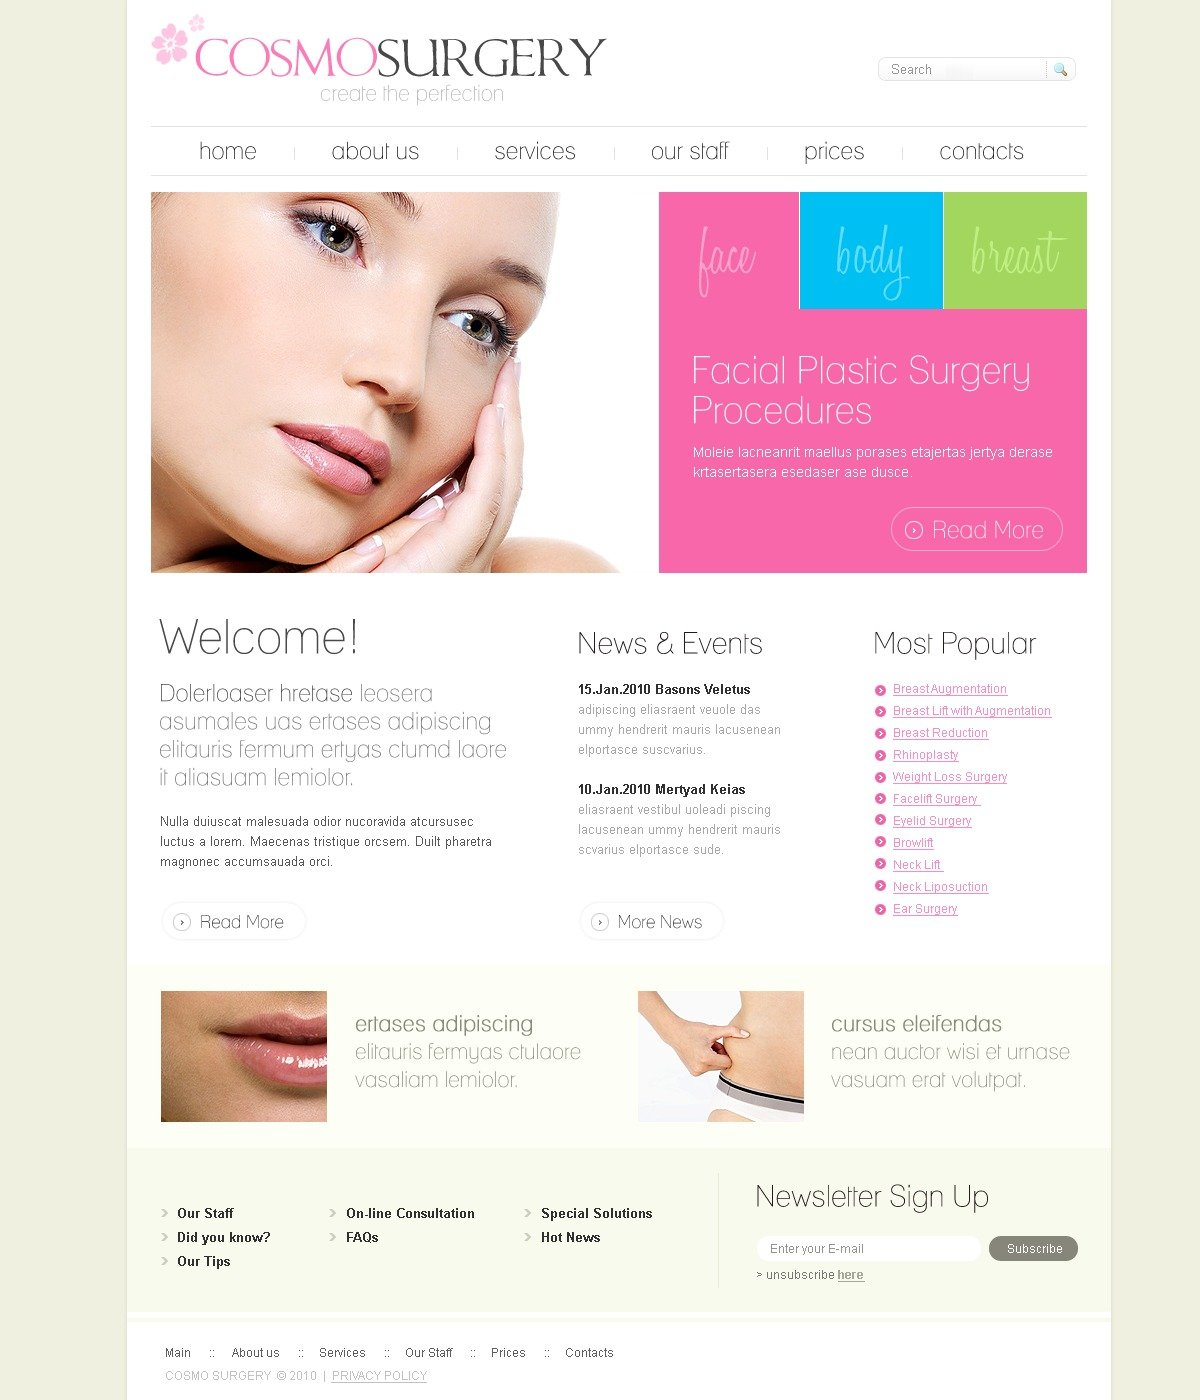 The Cosmo Surgery PSD Design 54206, one of the best PSD templates of its kind (medical, wide, jquery), also known as cosmo surgery PSD template, plastic surgeon PSD template, doctor PSD template, face PSD template, beauty PSD template, lifting PSD template, body PSD template, breasts clinic PSD template, services PSD template, client PSD template, testimonials PSD template, body PSD template, help PSD template, inspection PSD template, equipment PSD template, patients PSD template, medicine PSD template, healthcare PSD template, consultation PSD template, specialists PSD template, procedure PSD template, drugs PSD template, pills PSD template, cure PSD template, vaccine PSD template, treatment and related with cosmo surgery, plastic surgeon, doctor, face, beauty, lifting, body, breasts clinic, services, client, testimonials, body, help, inspection, equipment, patients, medicine, healthcare, consultation, specialists, procedure, drugs, pills, cure, vaccine, treatment, etc.